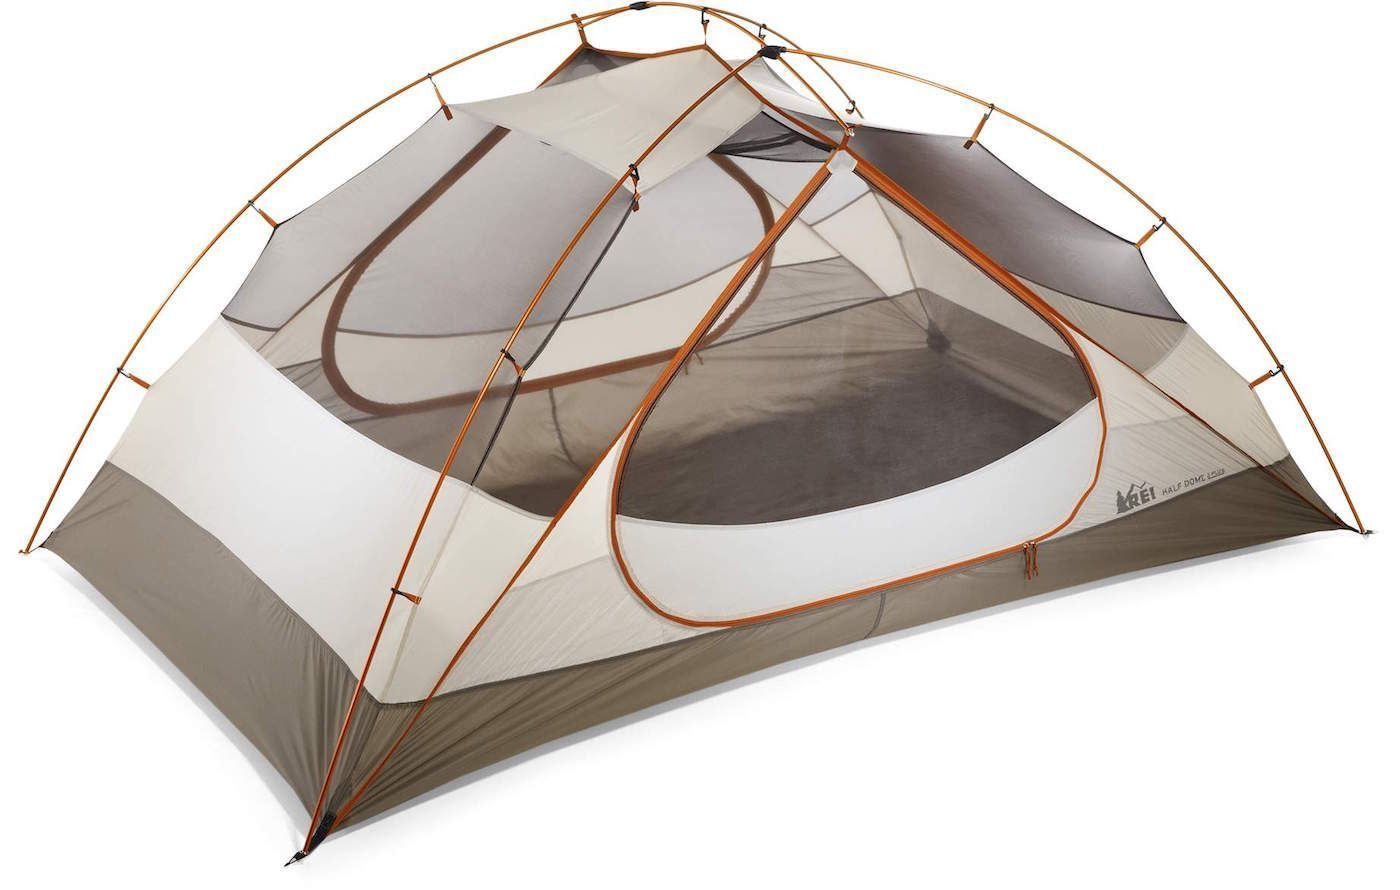 REI half dome 2 plus best backpacking tent //c&ingtentlove.org/  sc 1 st  Pinterest & REI half dome 2 plus best backpacking tent http://campingtentlove ...